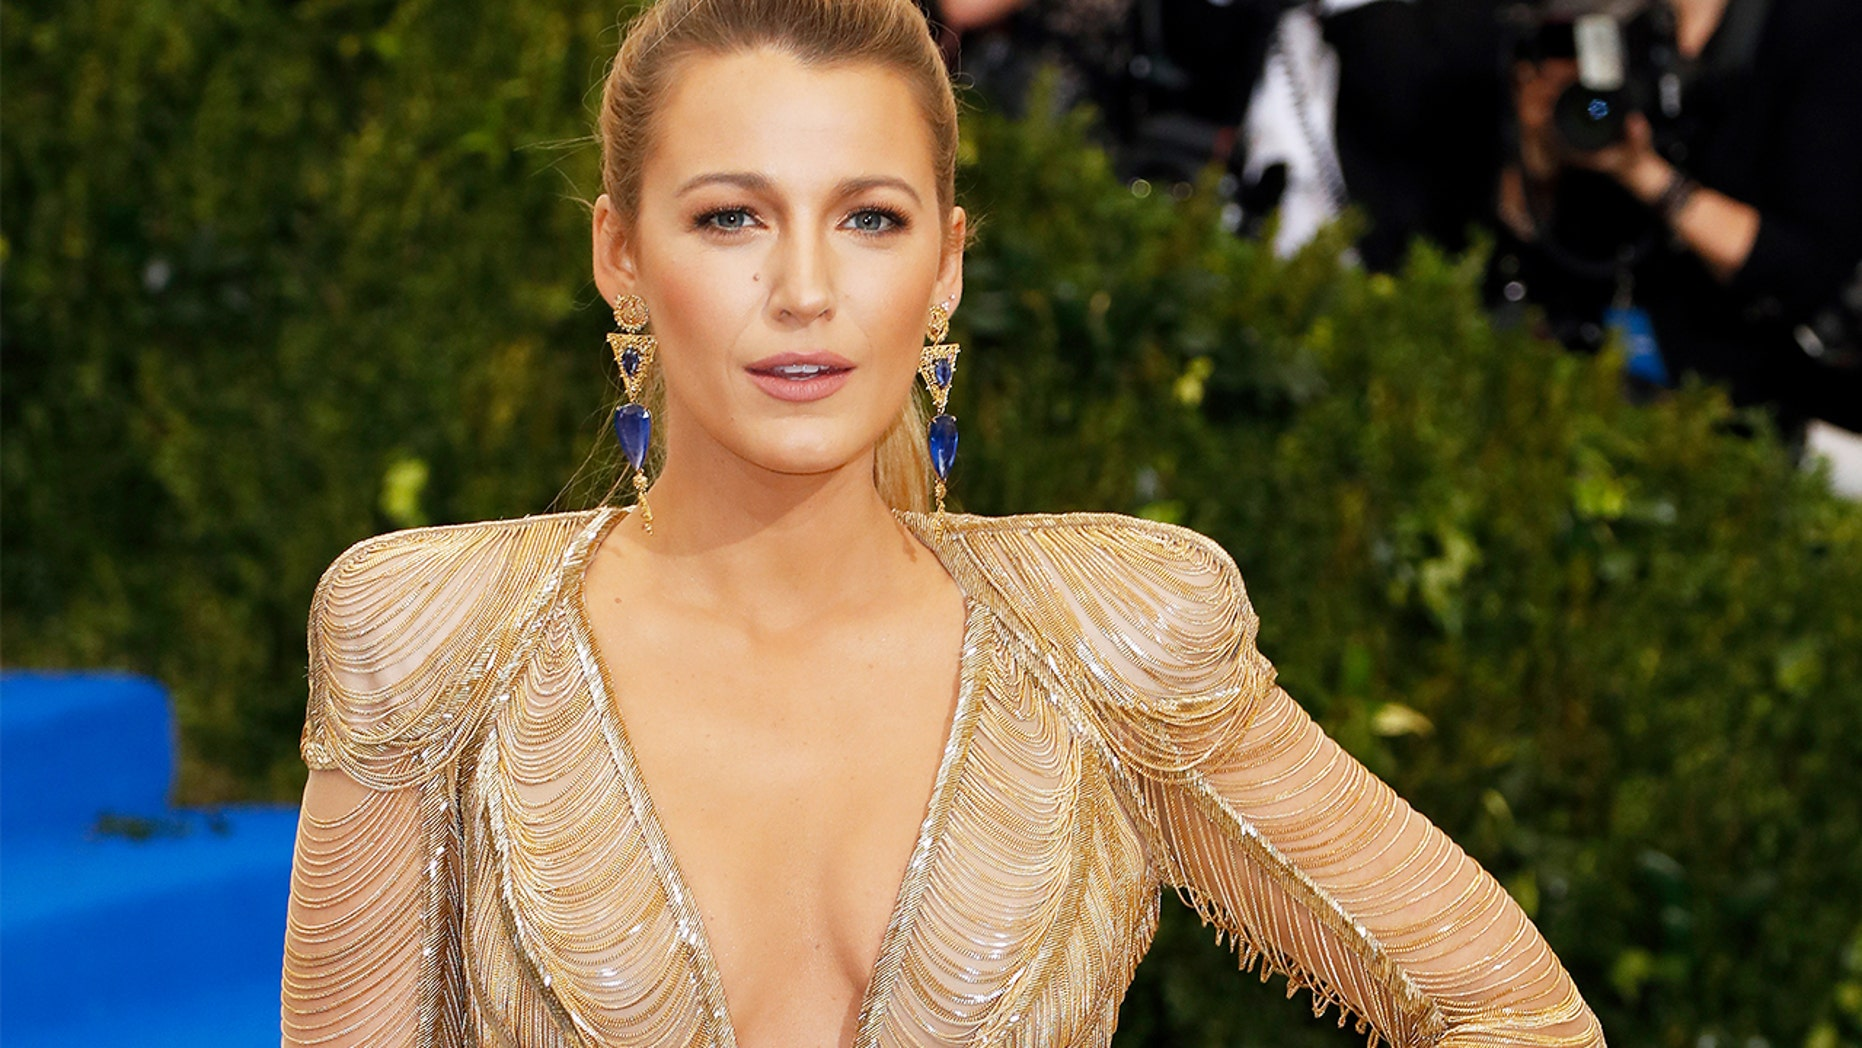 Blake Lively's hand injury leads to the production shut down of her new film.